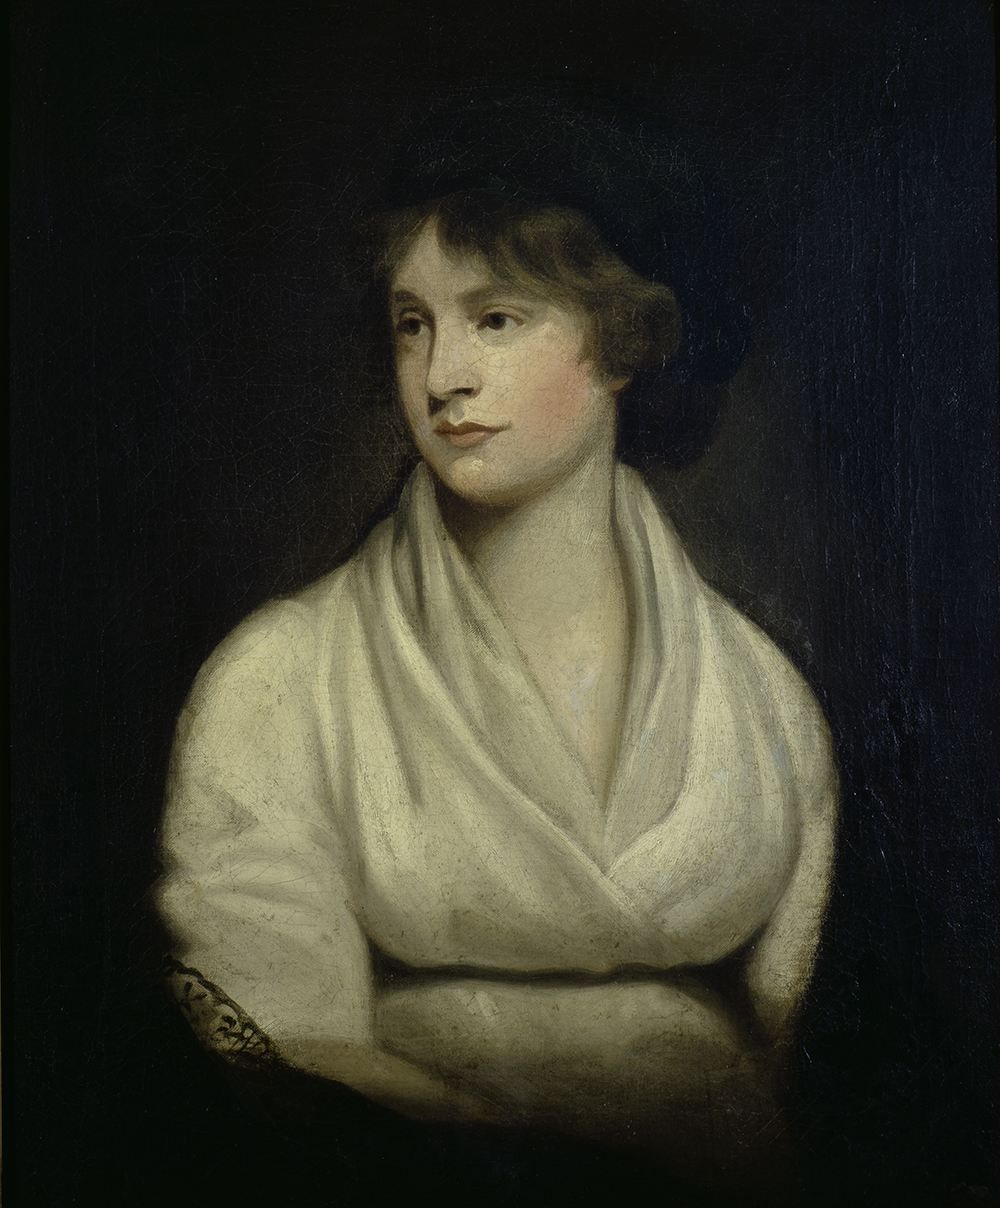 Mary Wollstonecraft, by John Opie, 1804. New York Public Library, Carl H. Pforzheimer Collection of Shelley and His Circle.